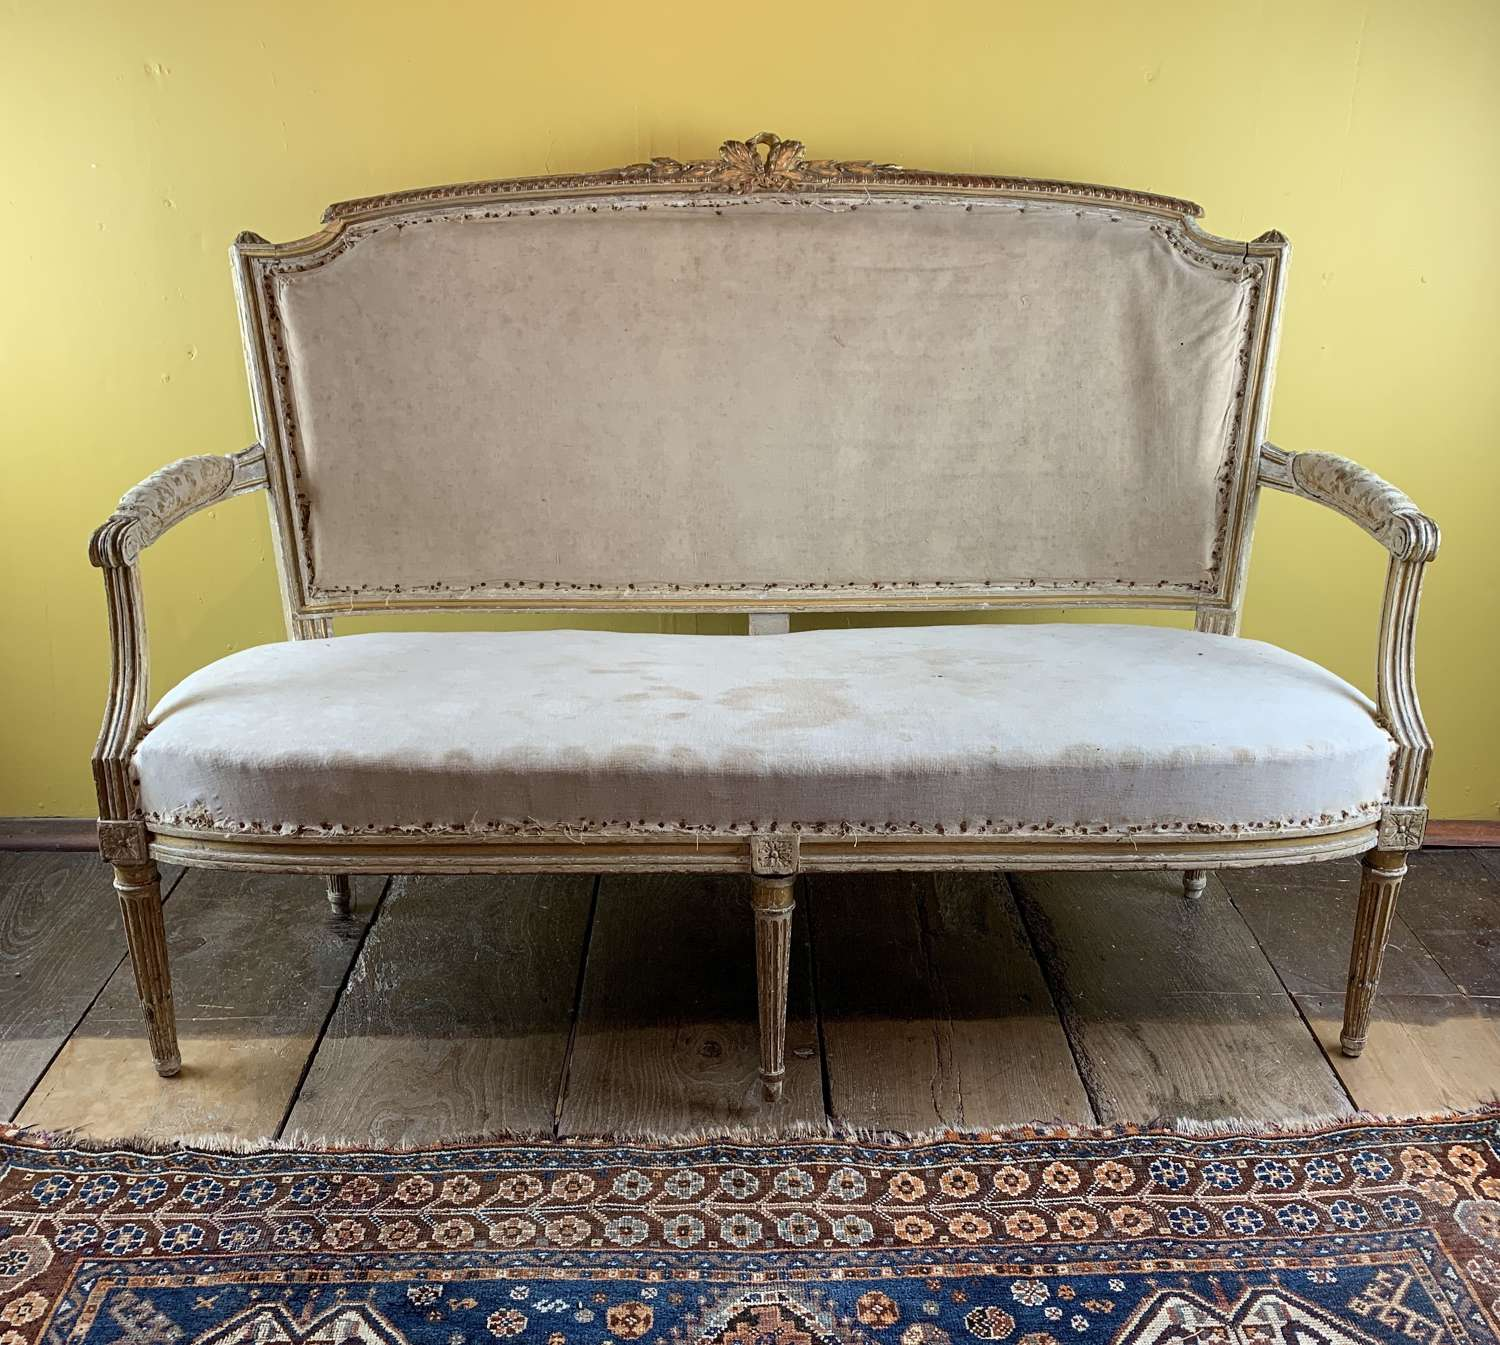 Antique French Painted & Giltwood Sofa in Louis XVI Style